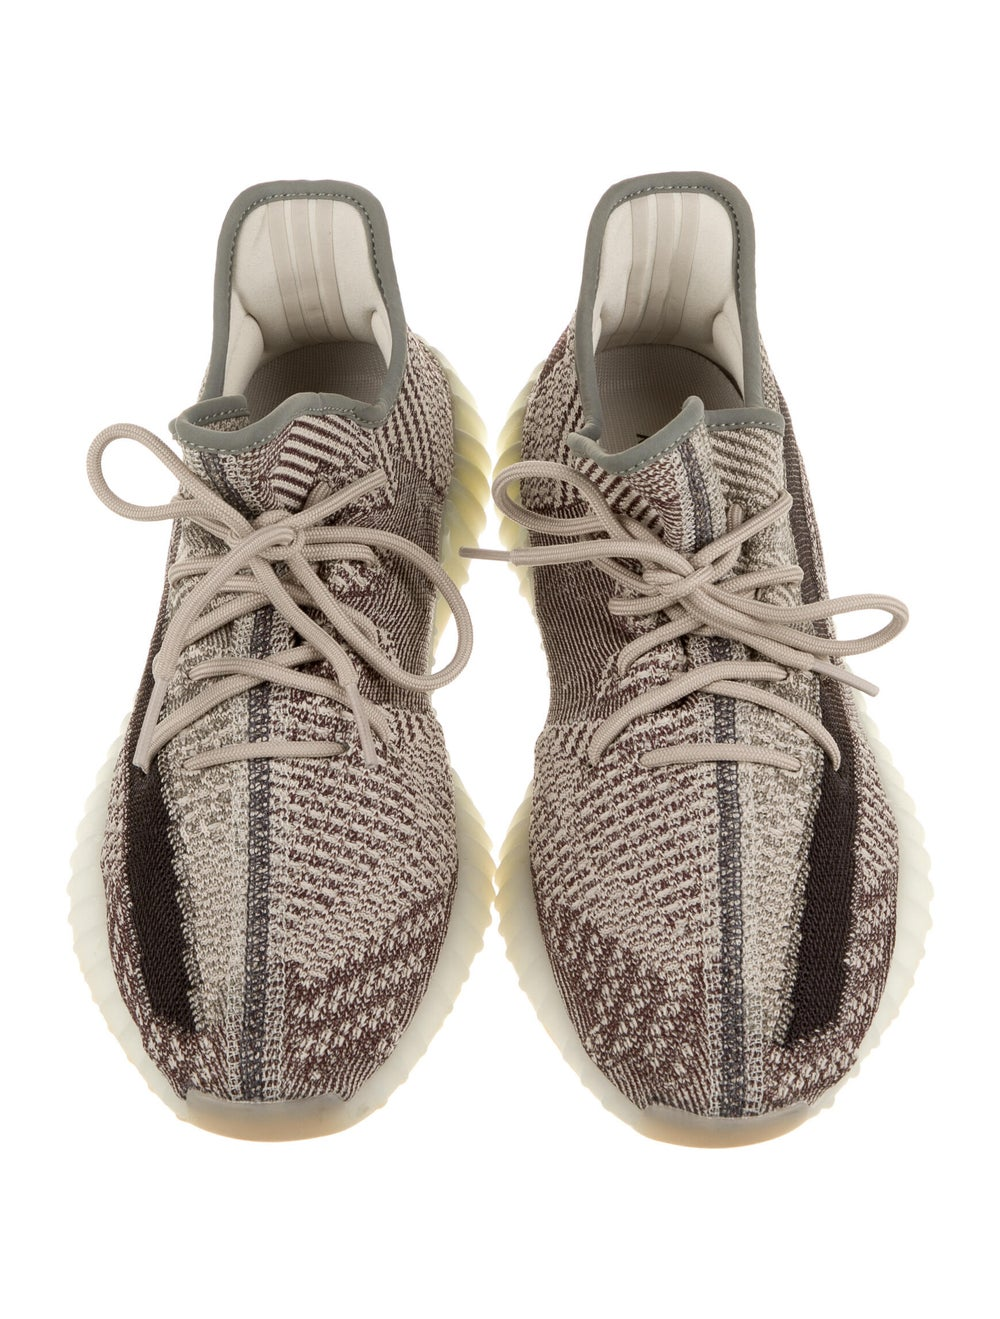 Yeezy x adidas Boost 350 V2 Zyon Sneakers Sneakers - image 3